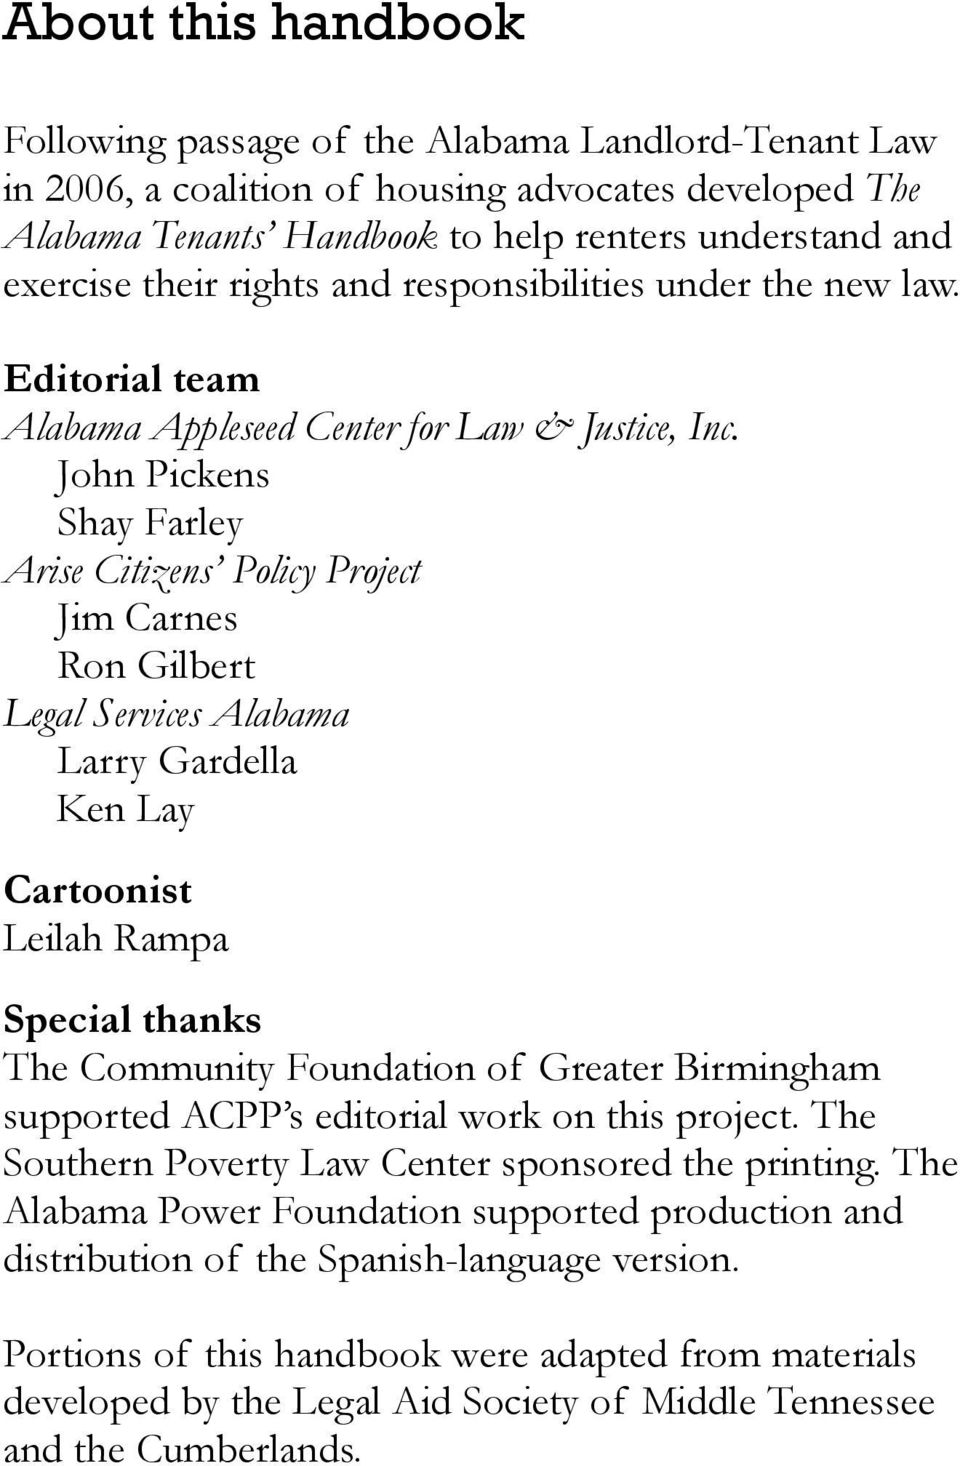 John Pickens Shay Farley Arise Citizens Policy Project Jim Carnes Ron Gilbert Legal Services Alabama Larry Gardella Ken Lay Cartoonist Leilah Rampa Special thanks The Community Foundation of Greater